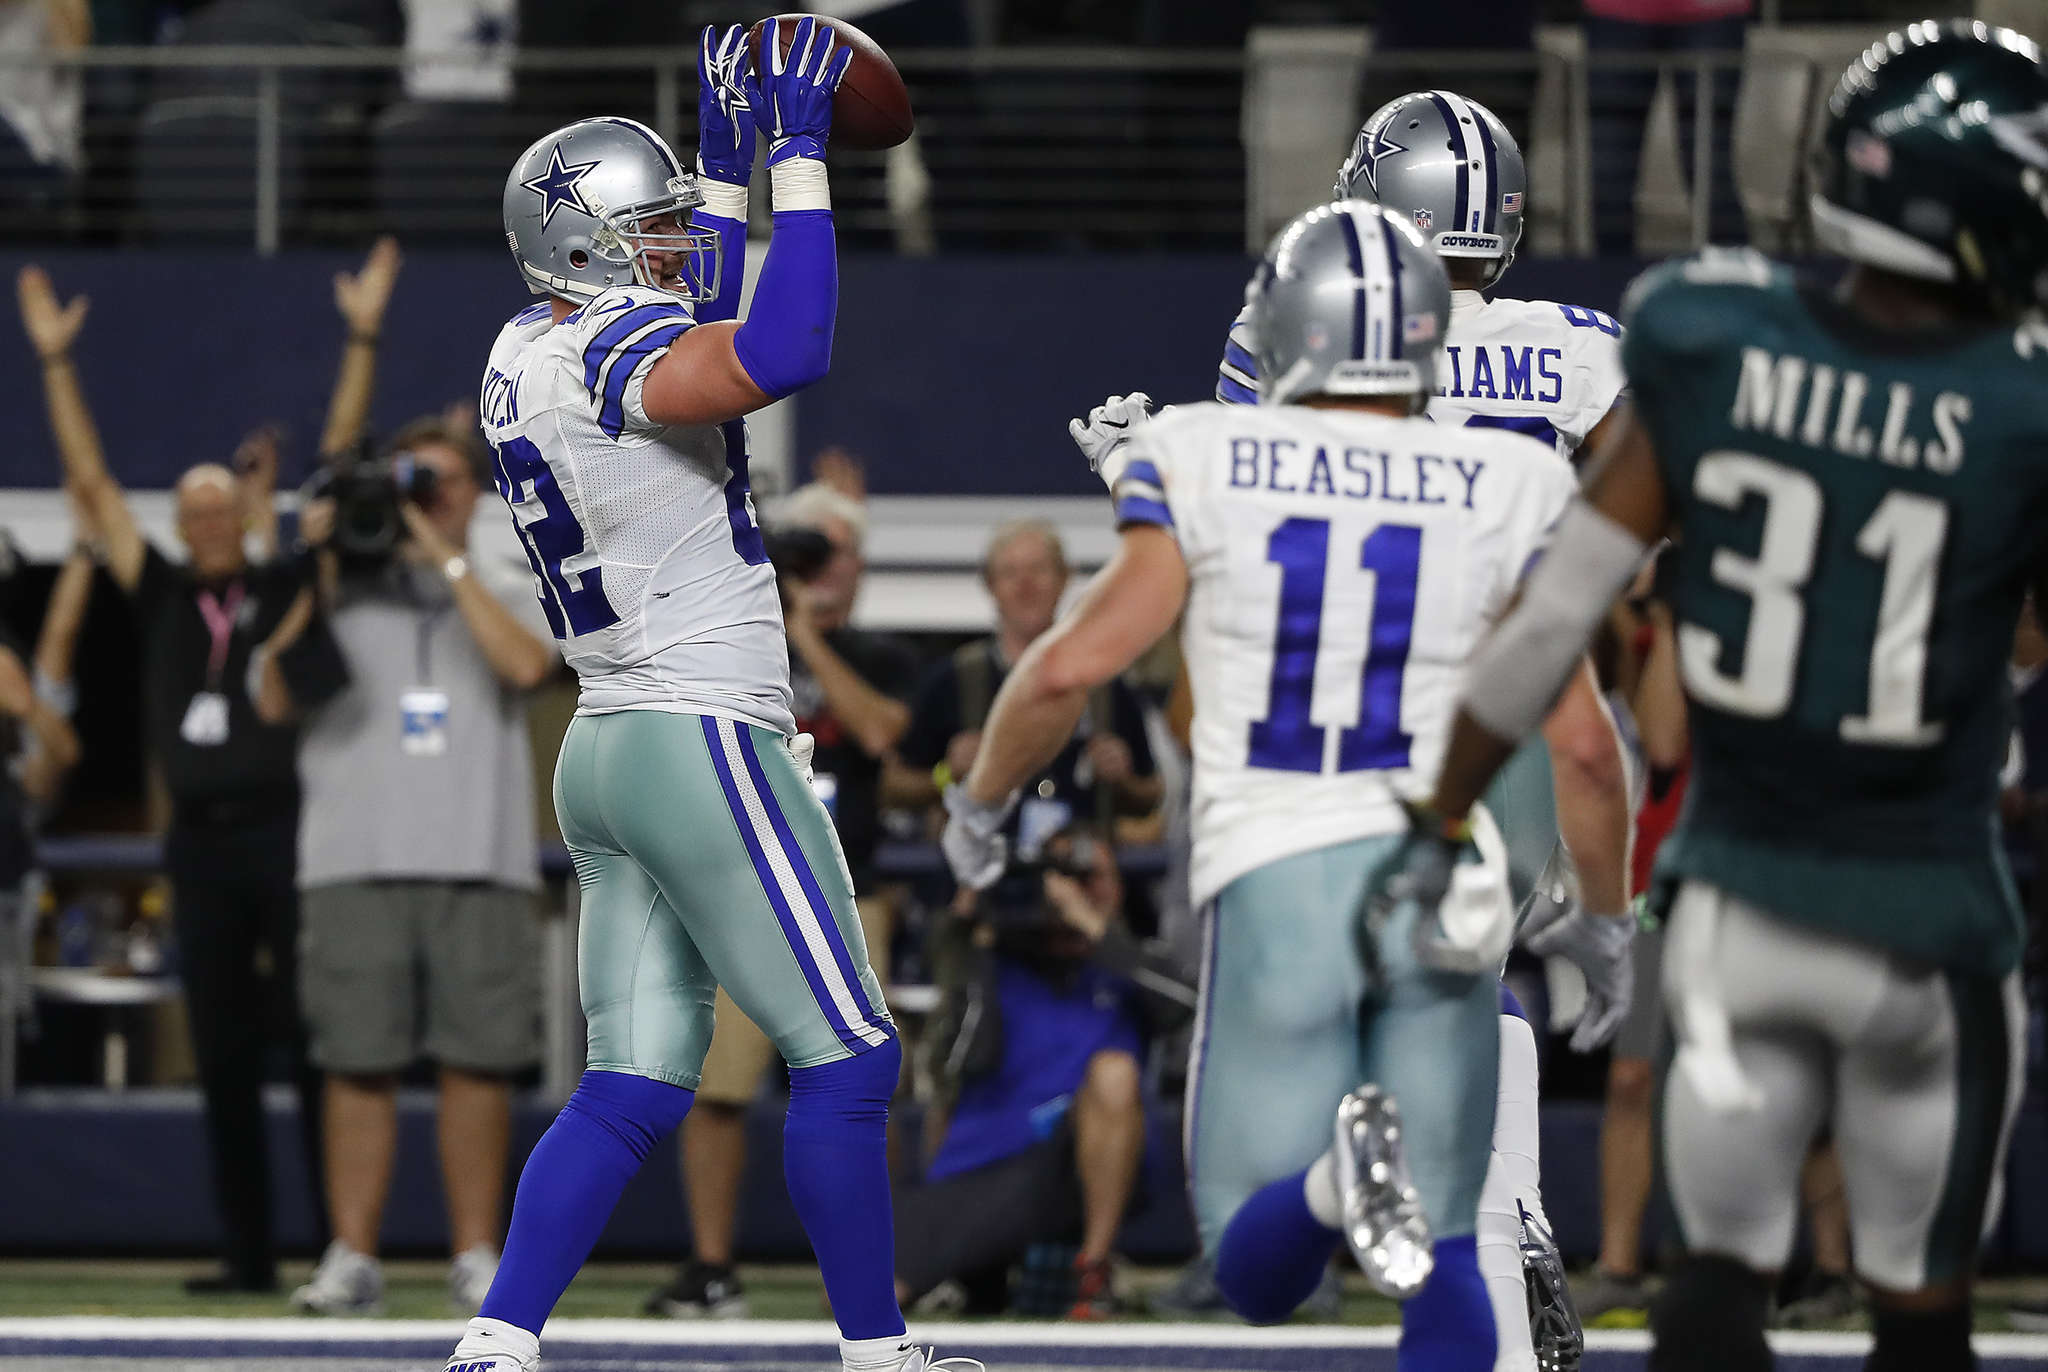 Cowboys´ Jason Witten celebrates after catching the winning touchdown pass in overtime of his team´s 29-23 win over the Eagles almost two months ago.